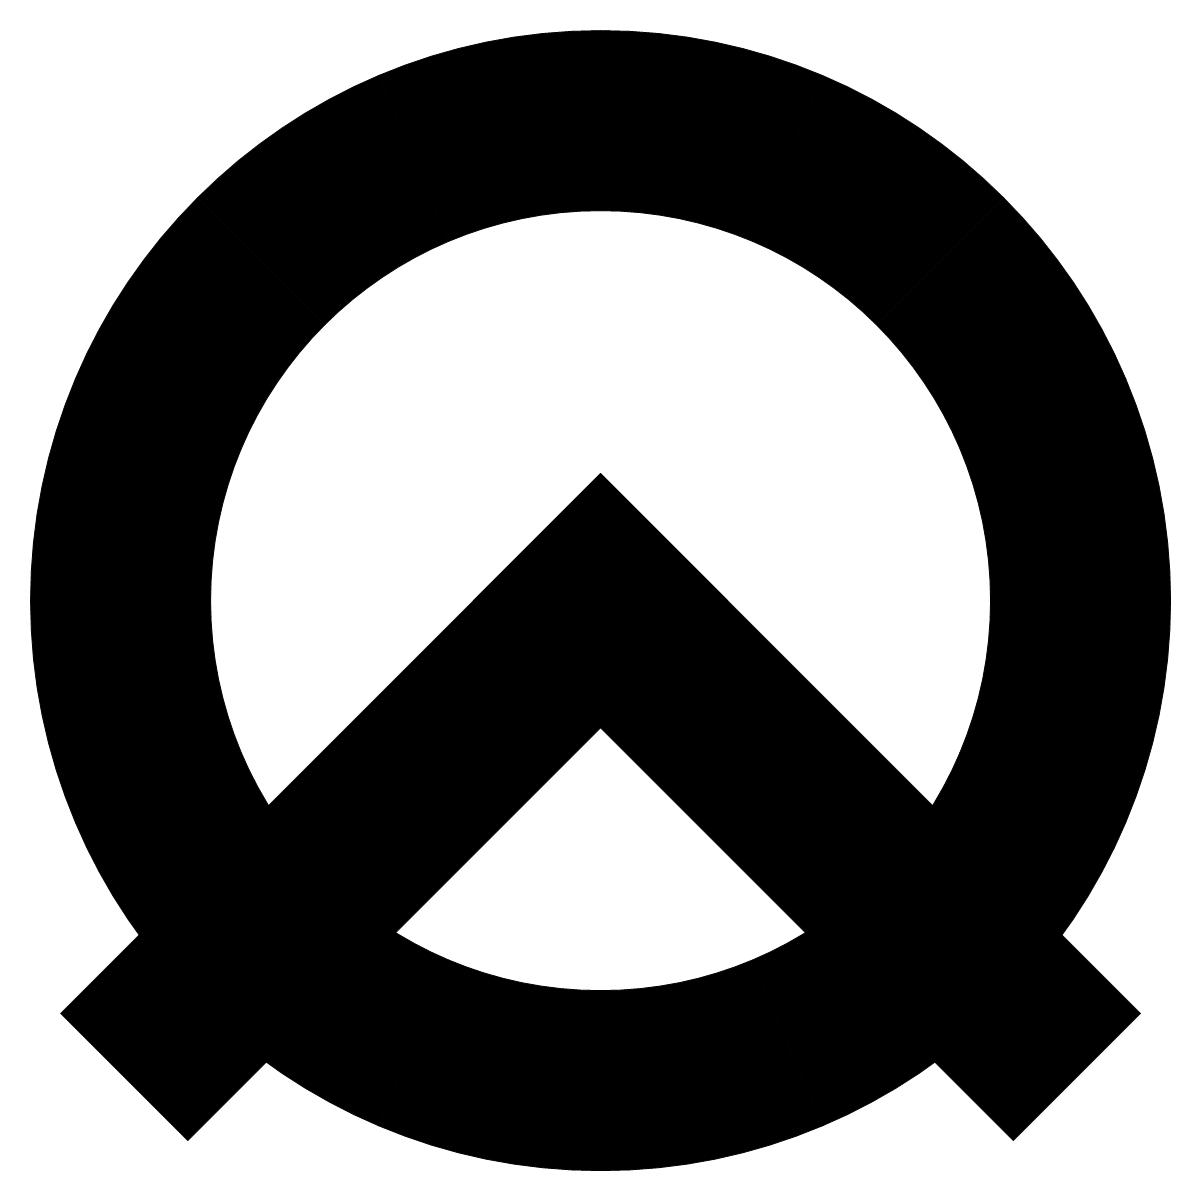 My favorite atheist symbol - Think Atheist